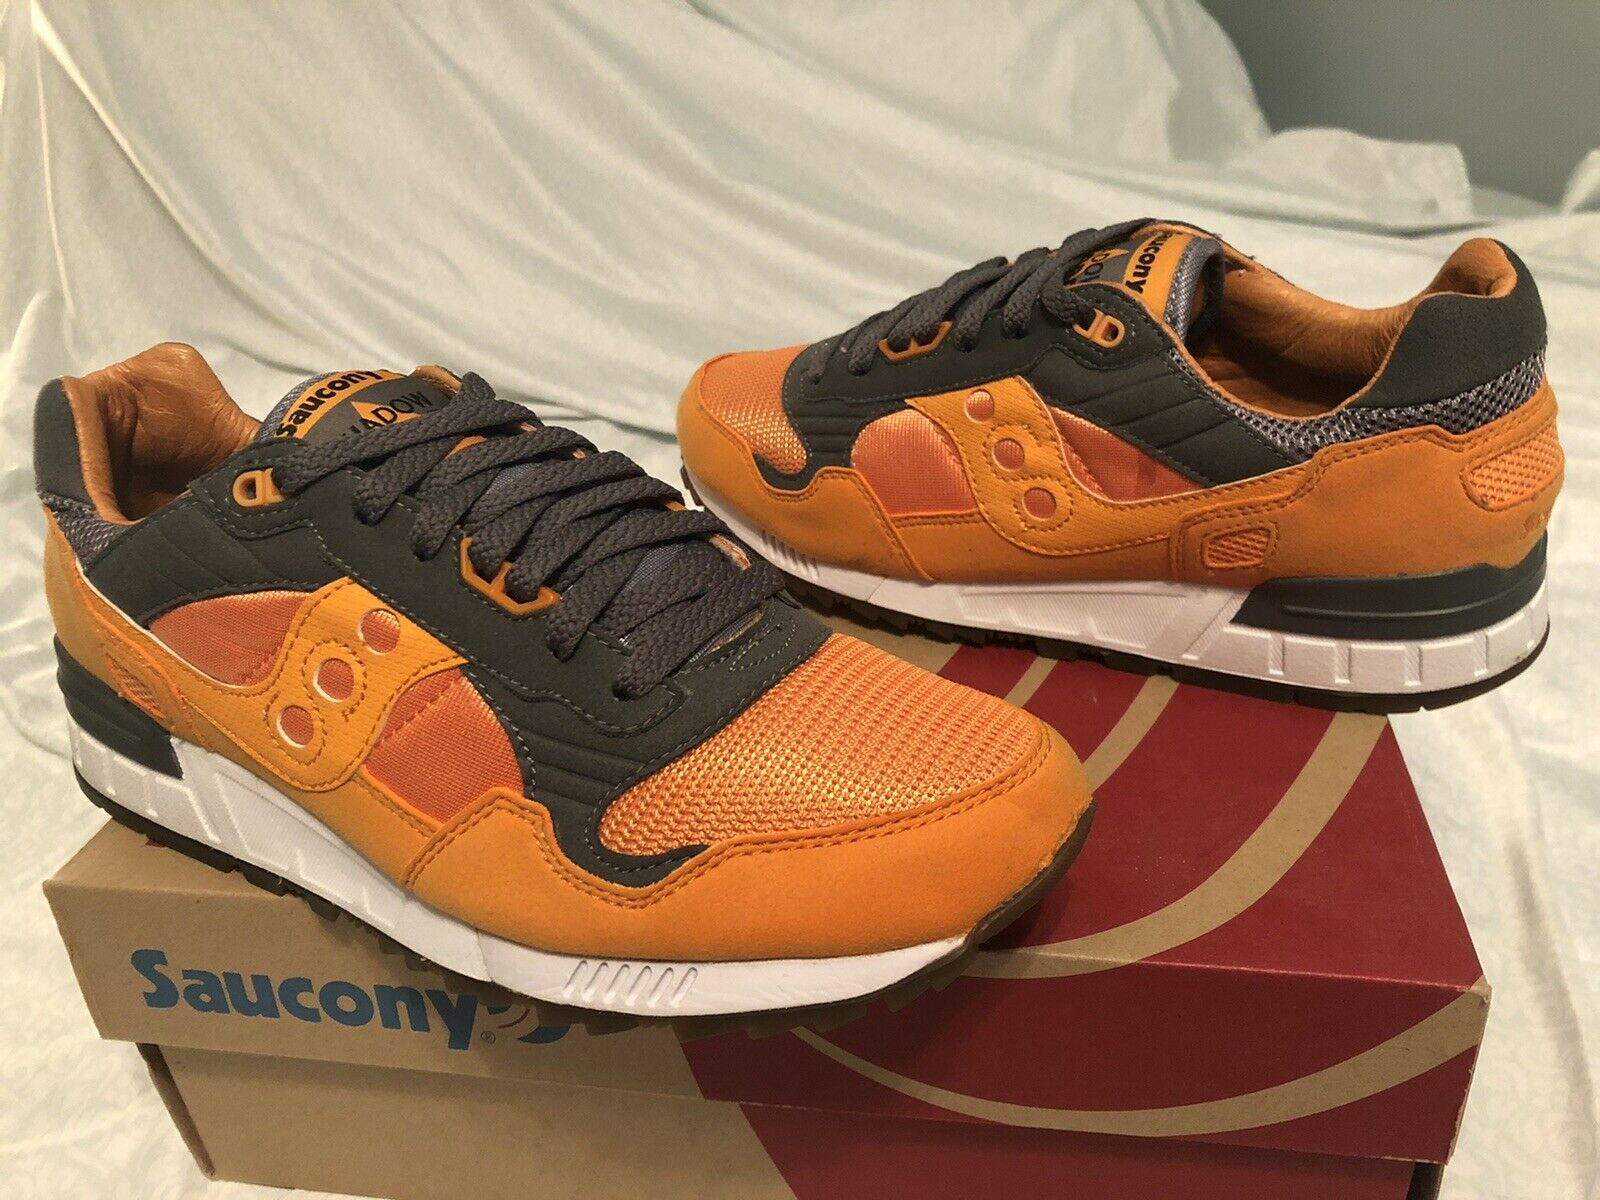 Saucony Shadow 5000 in Brown S70311-2